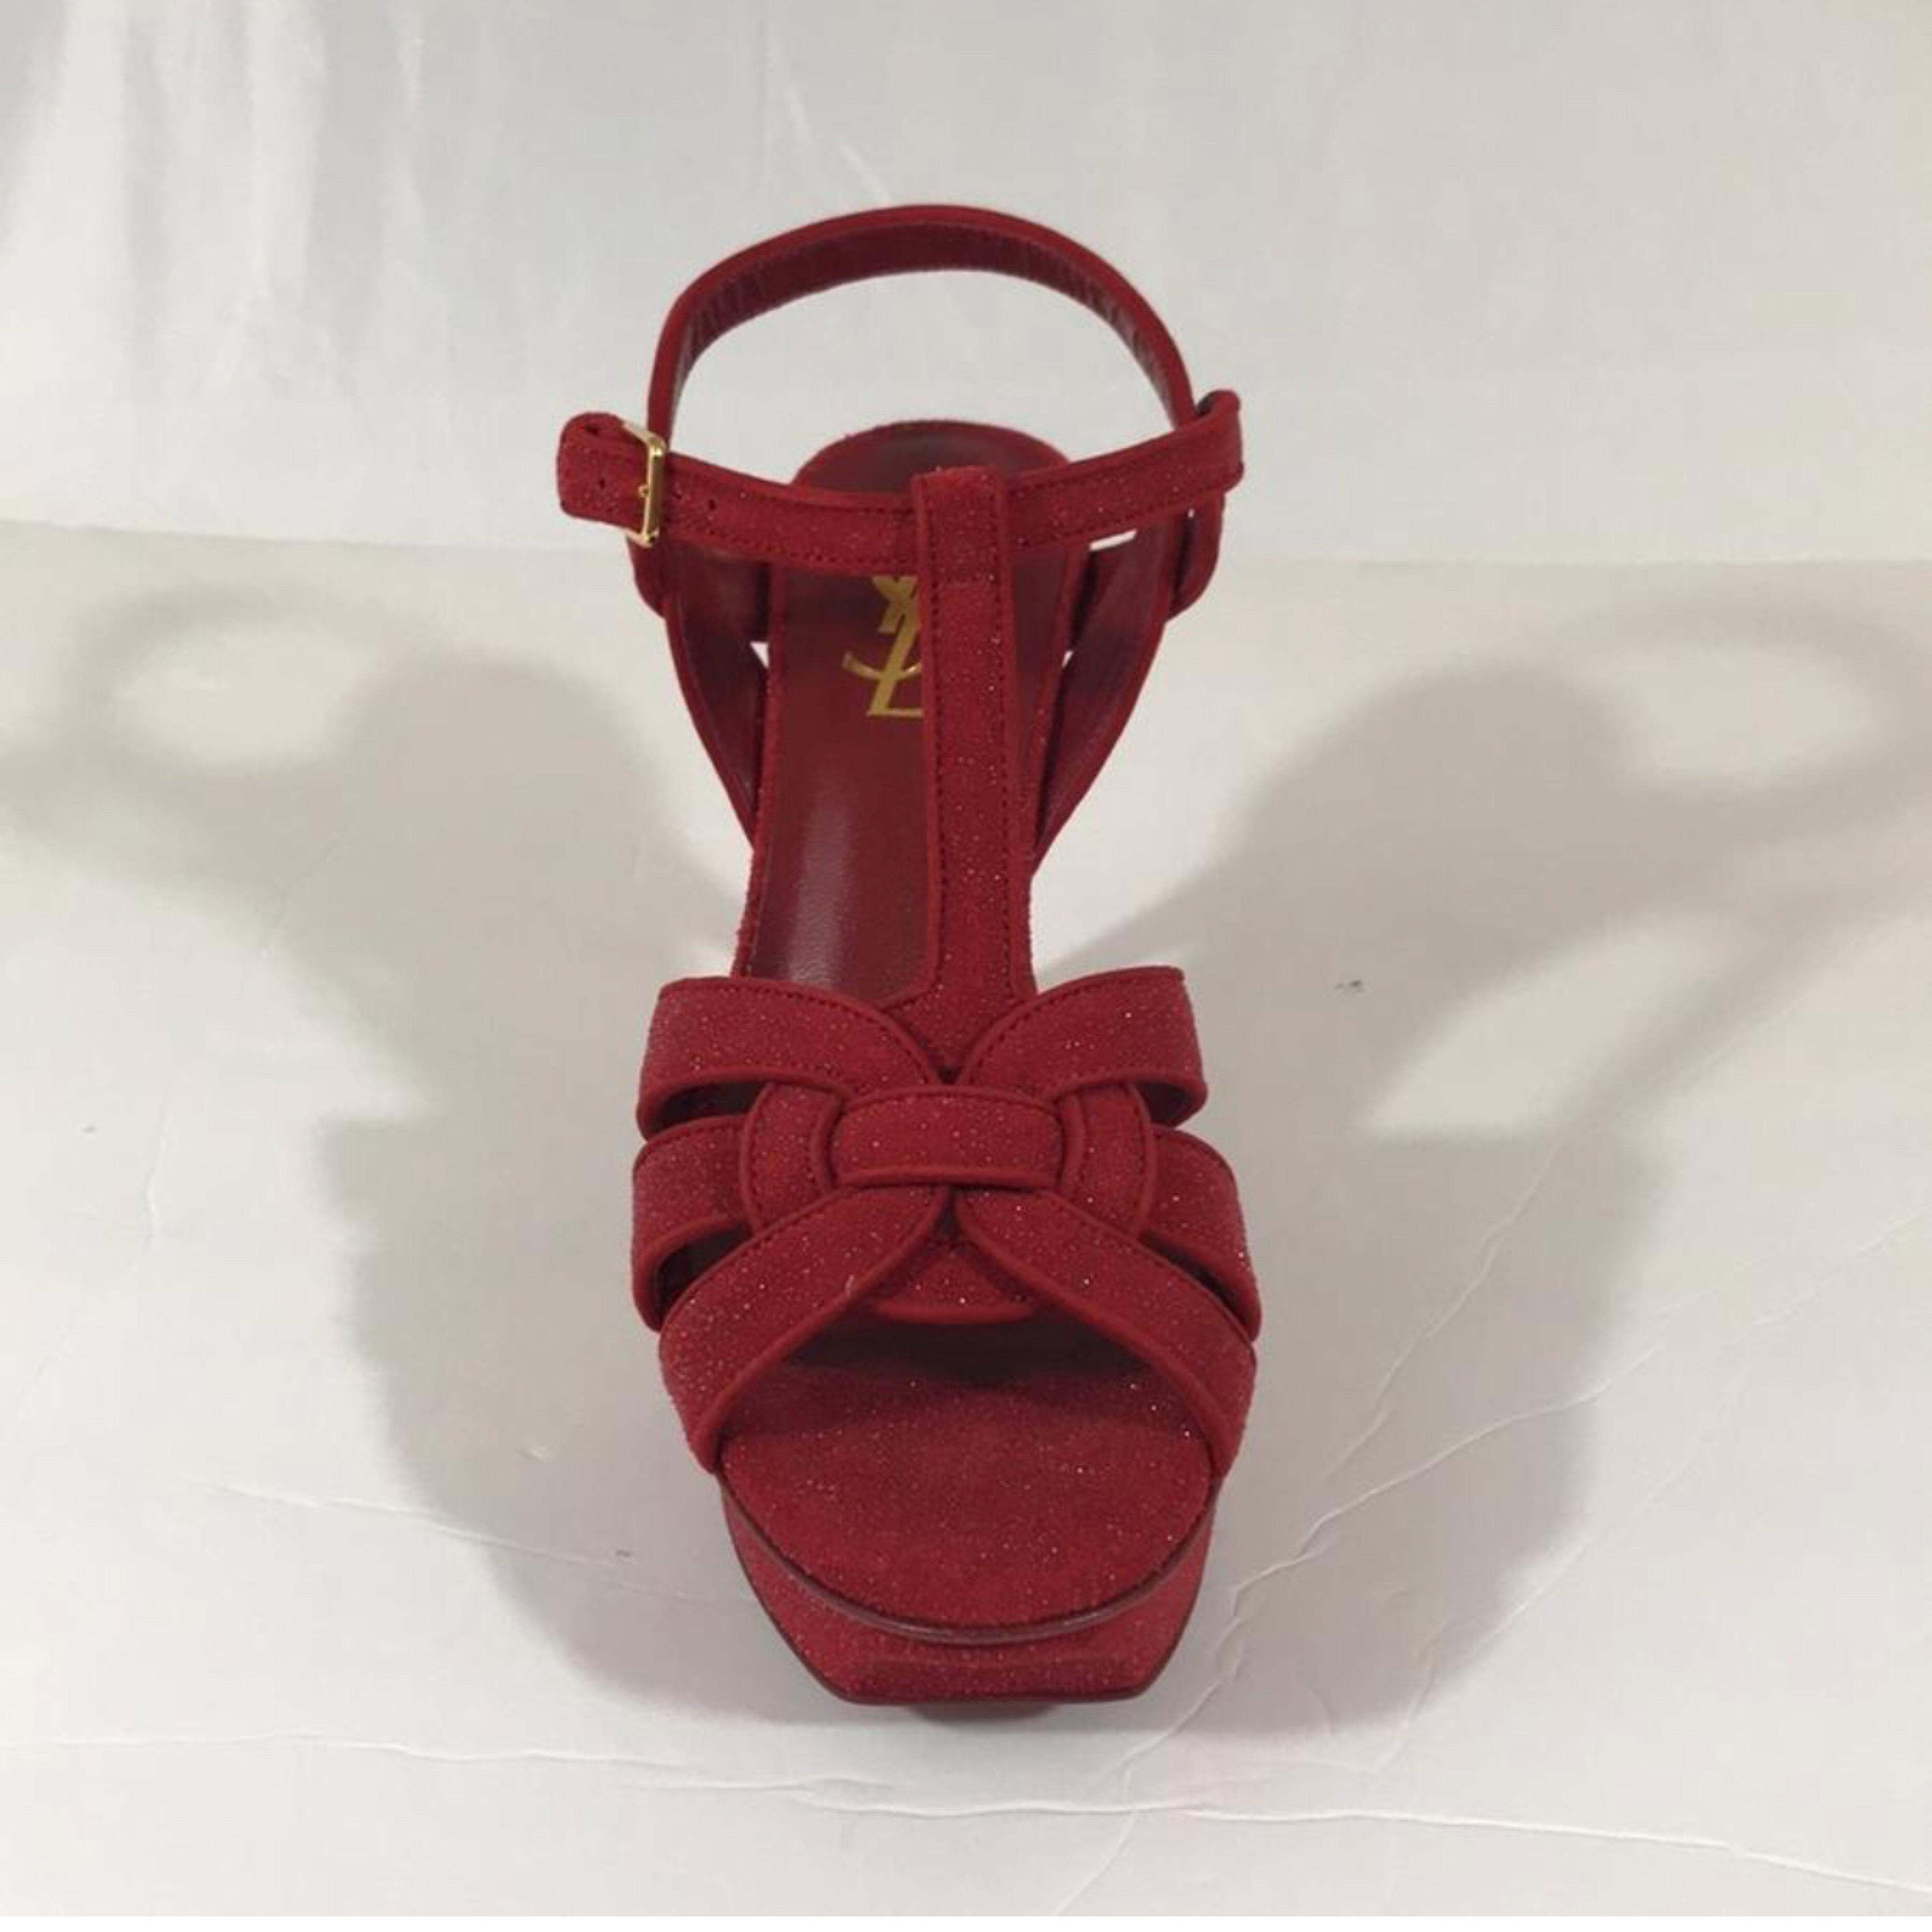 83093e0b7c4 ... Man Woman :Saint Laurent Ysl Red Sandals Sandals Sandals Size US 6.5  Regular ...